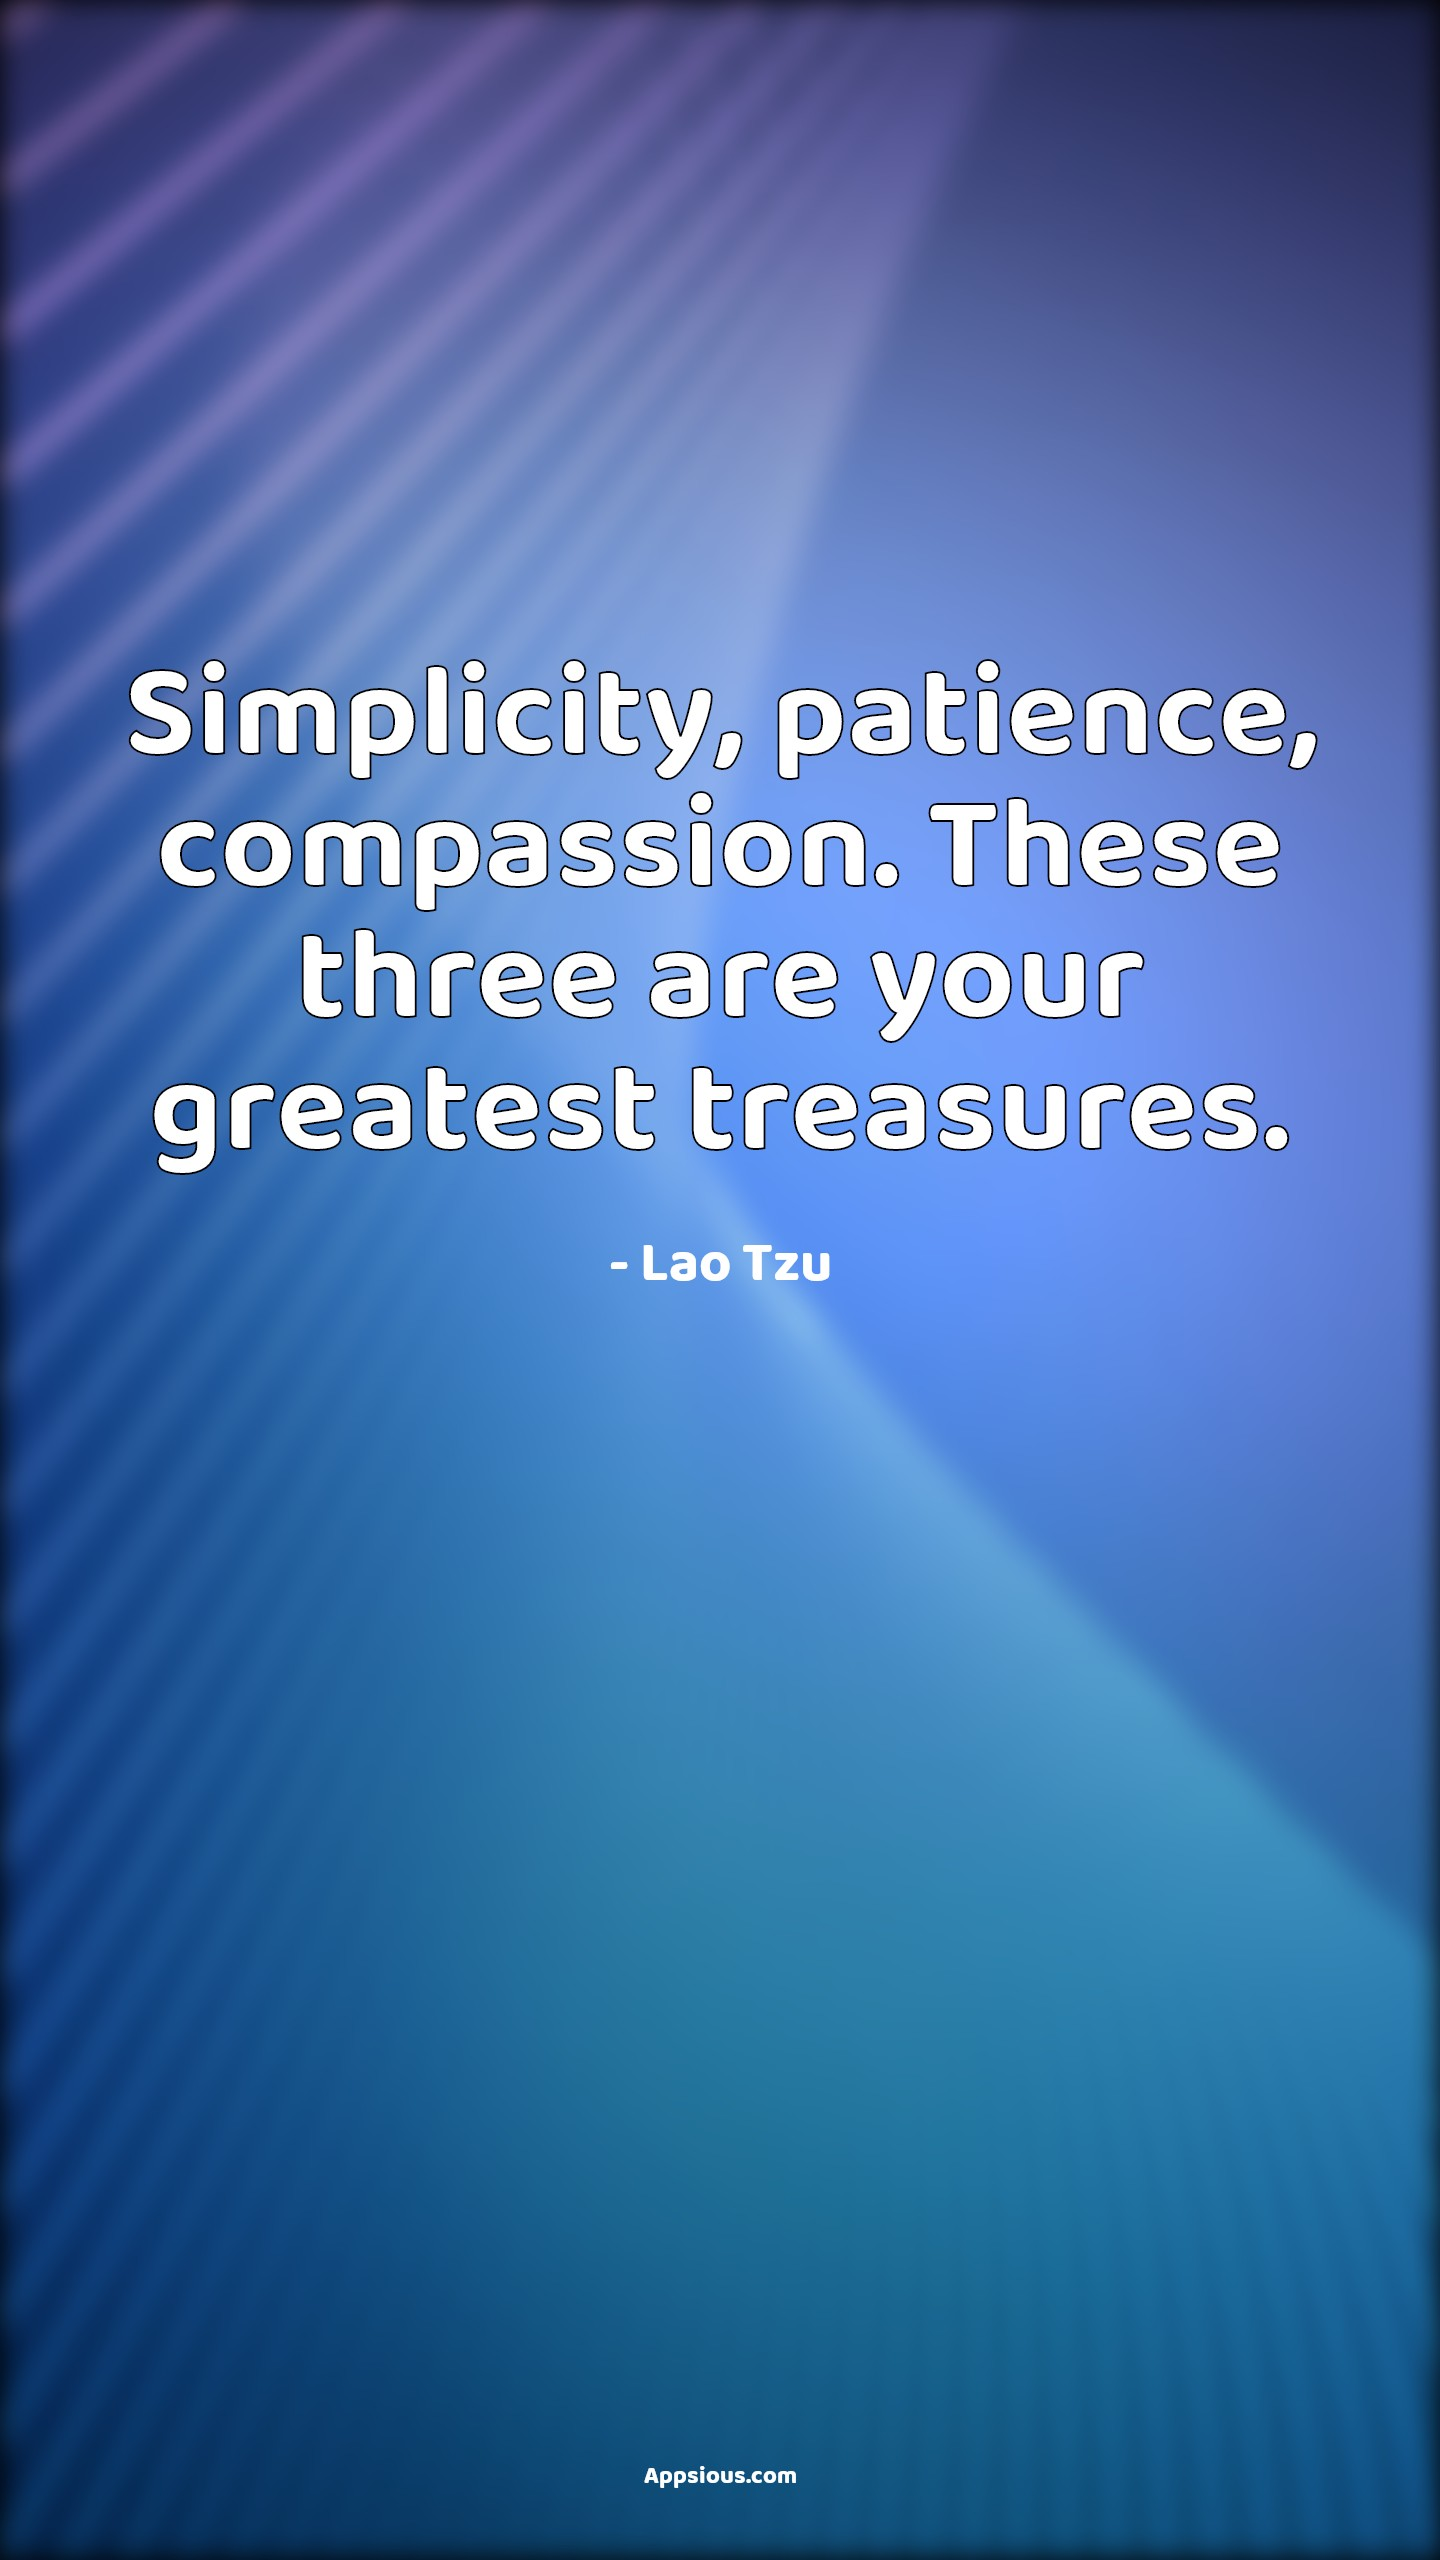 Simplicity, patience, compassion. These three are your greatest treasures.